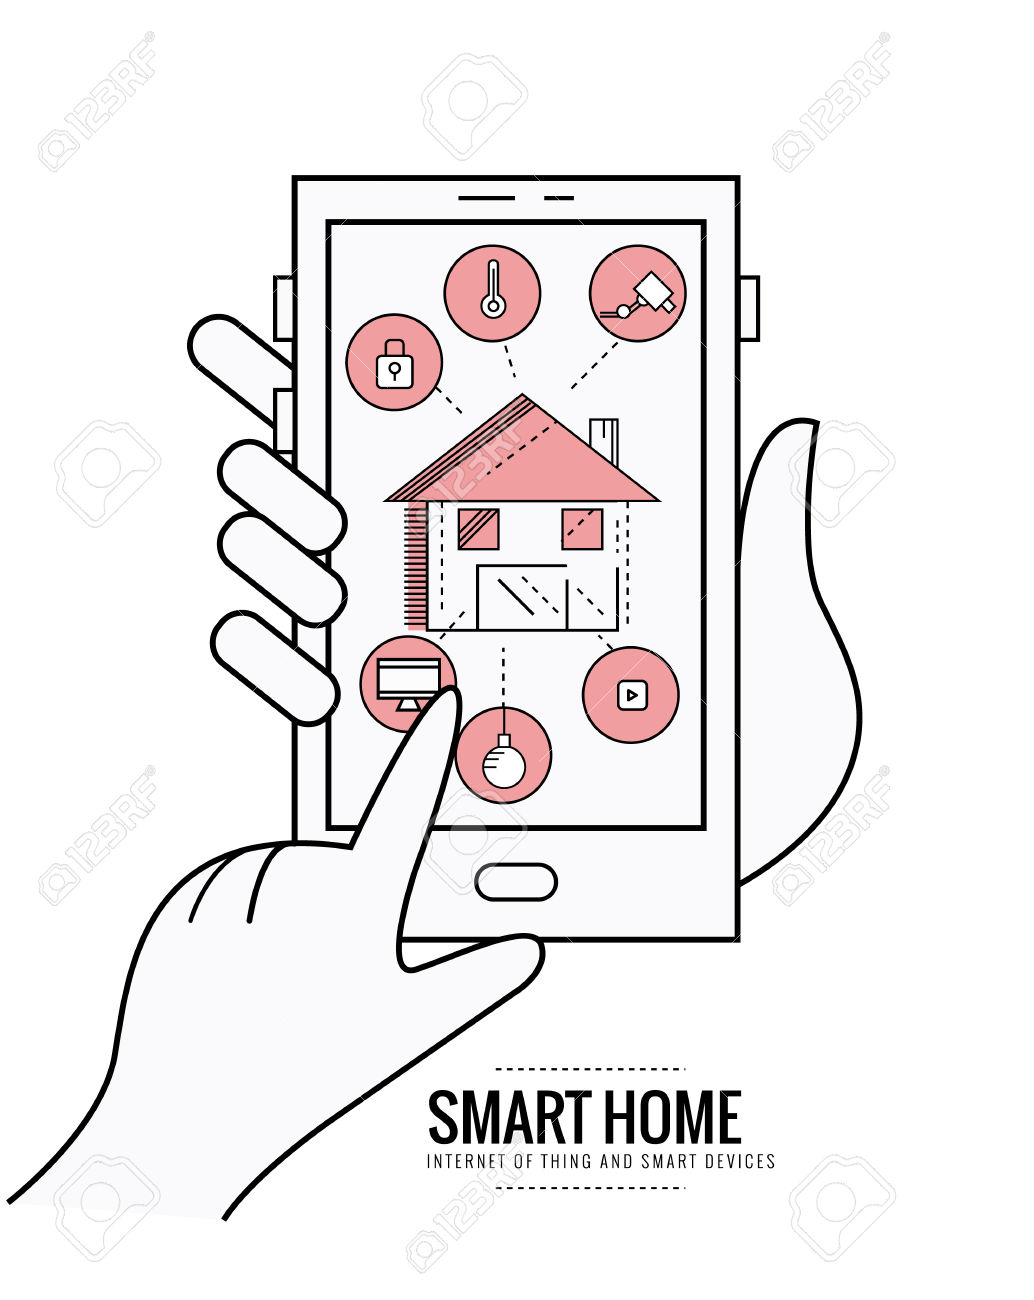 Smart Home Technology System With Centralized Control Of Lighting.